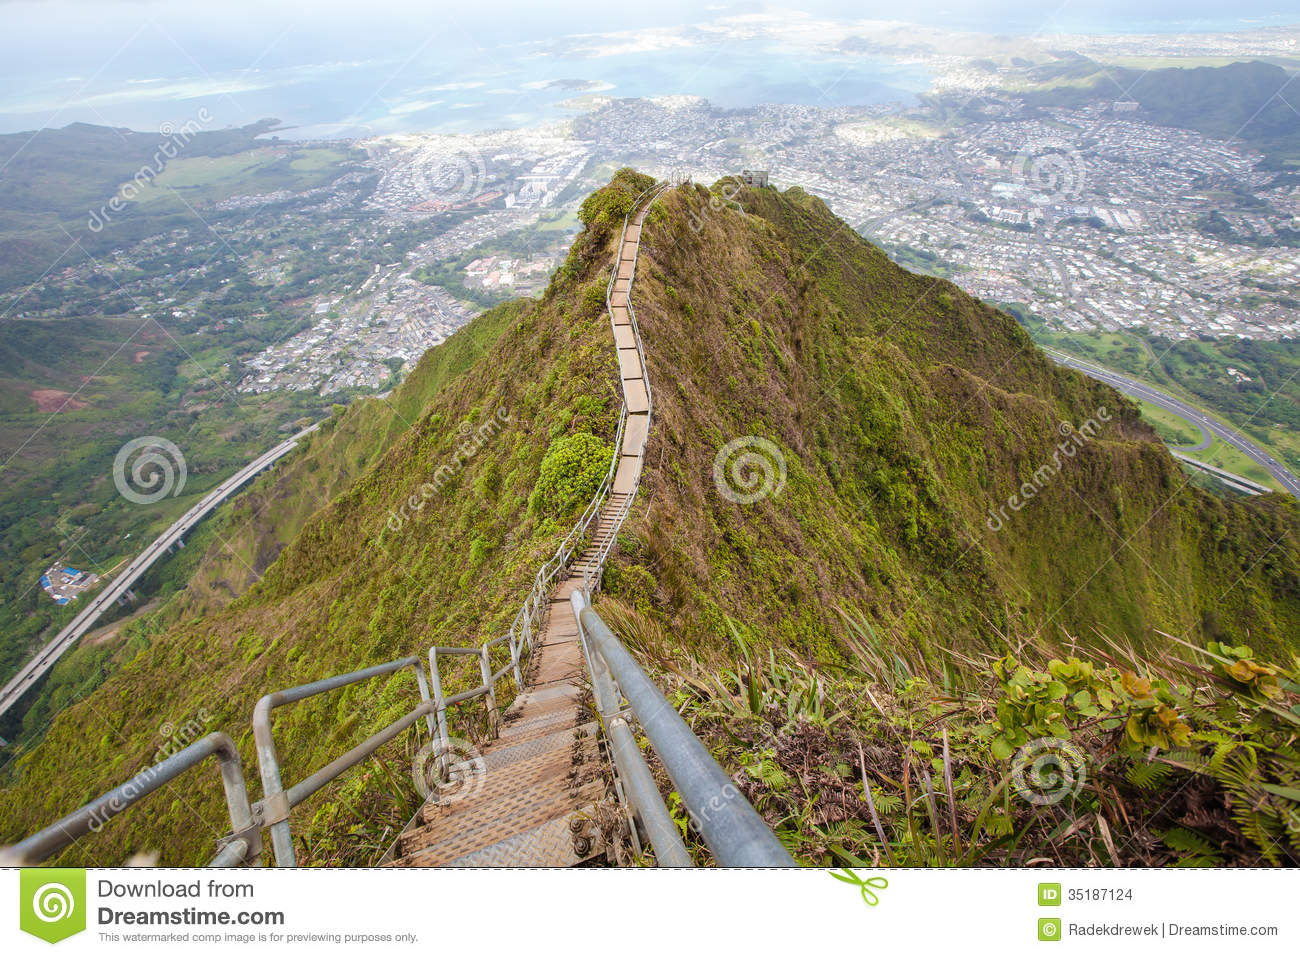 Slide 9999 Feet In A Box likewise Video Games blueprints additionally Giants Causeway also Lava Arena Dome furthermore 6 Myths Christians Need To Shatter About Hell. on lava stairs